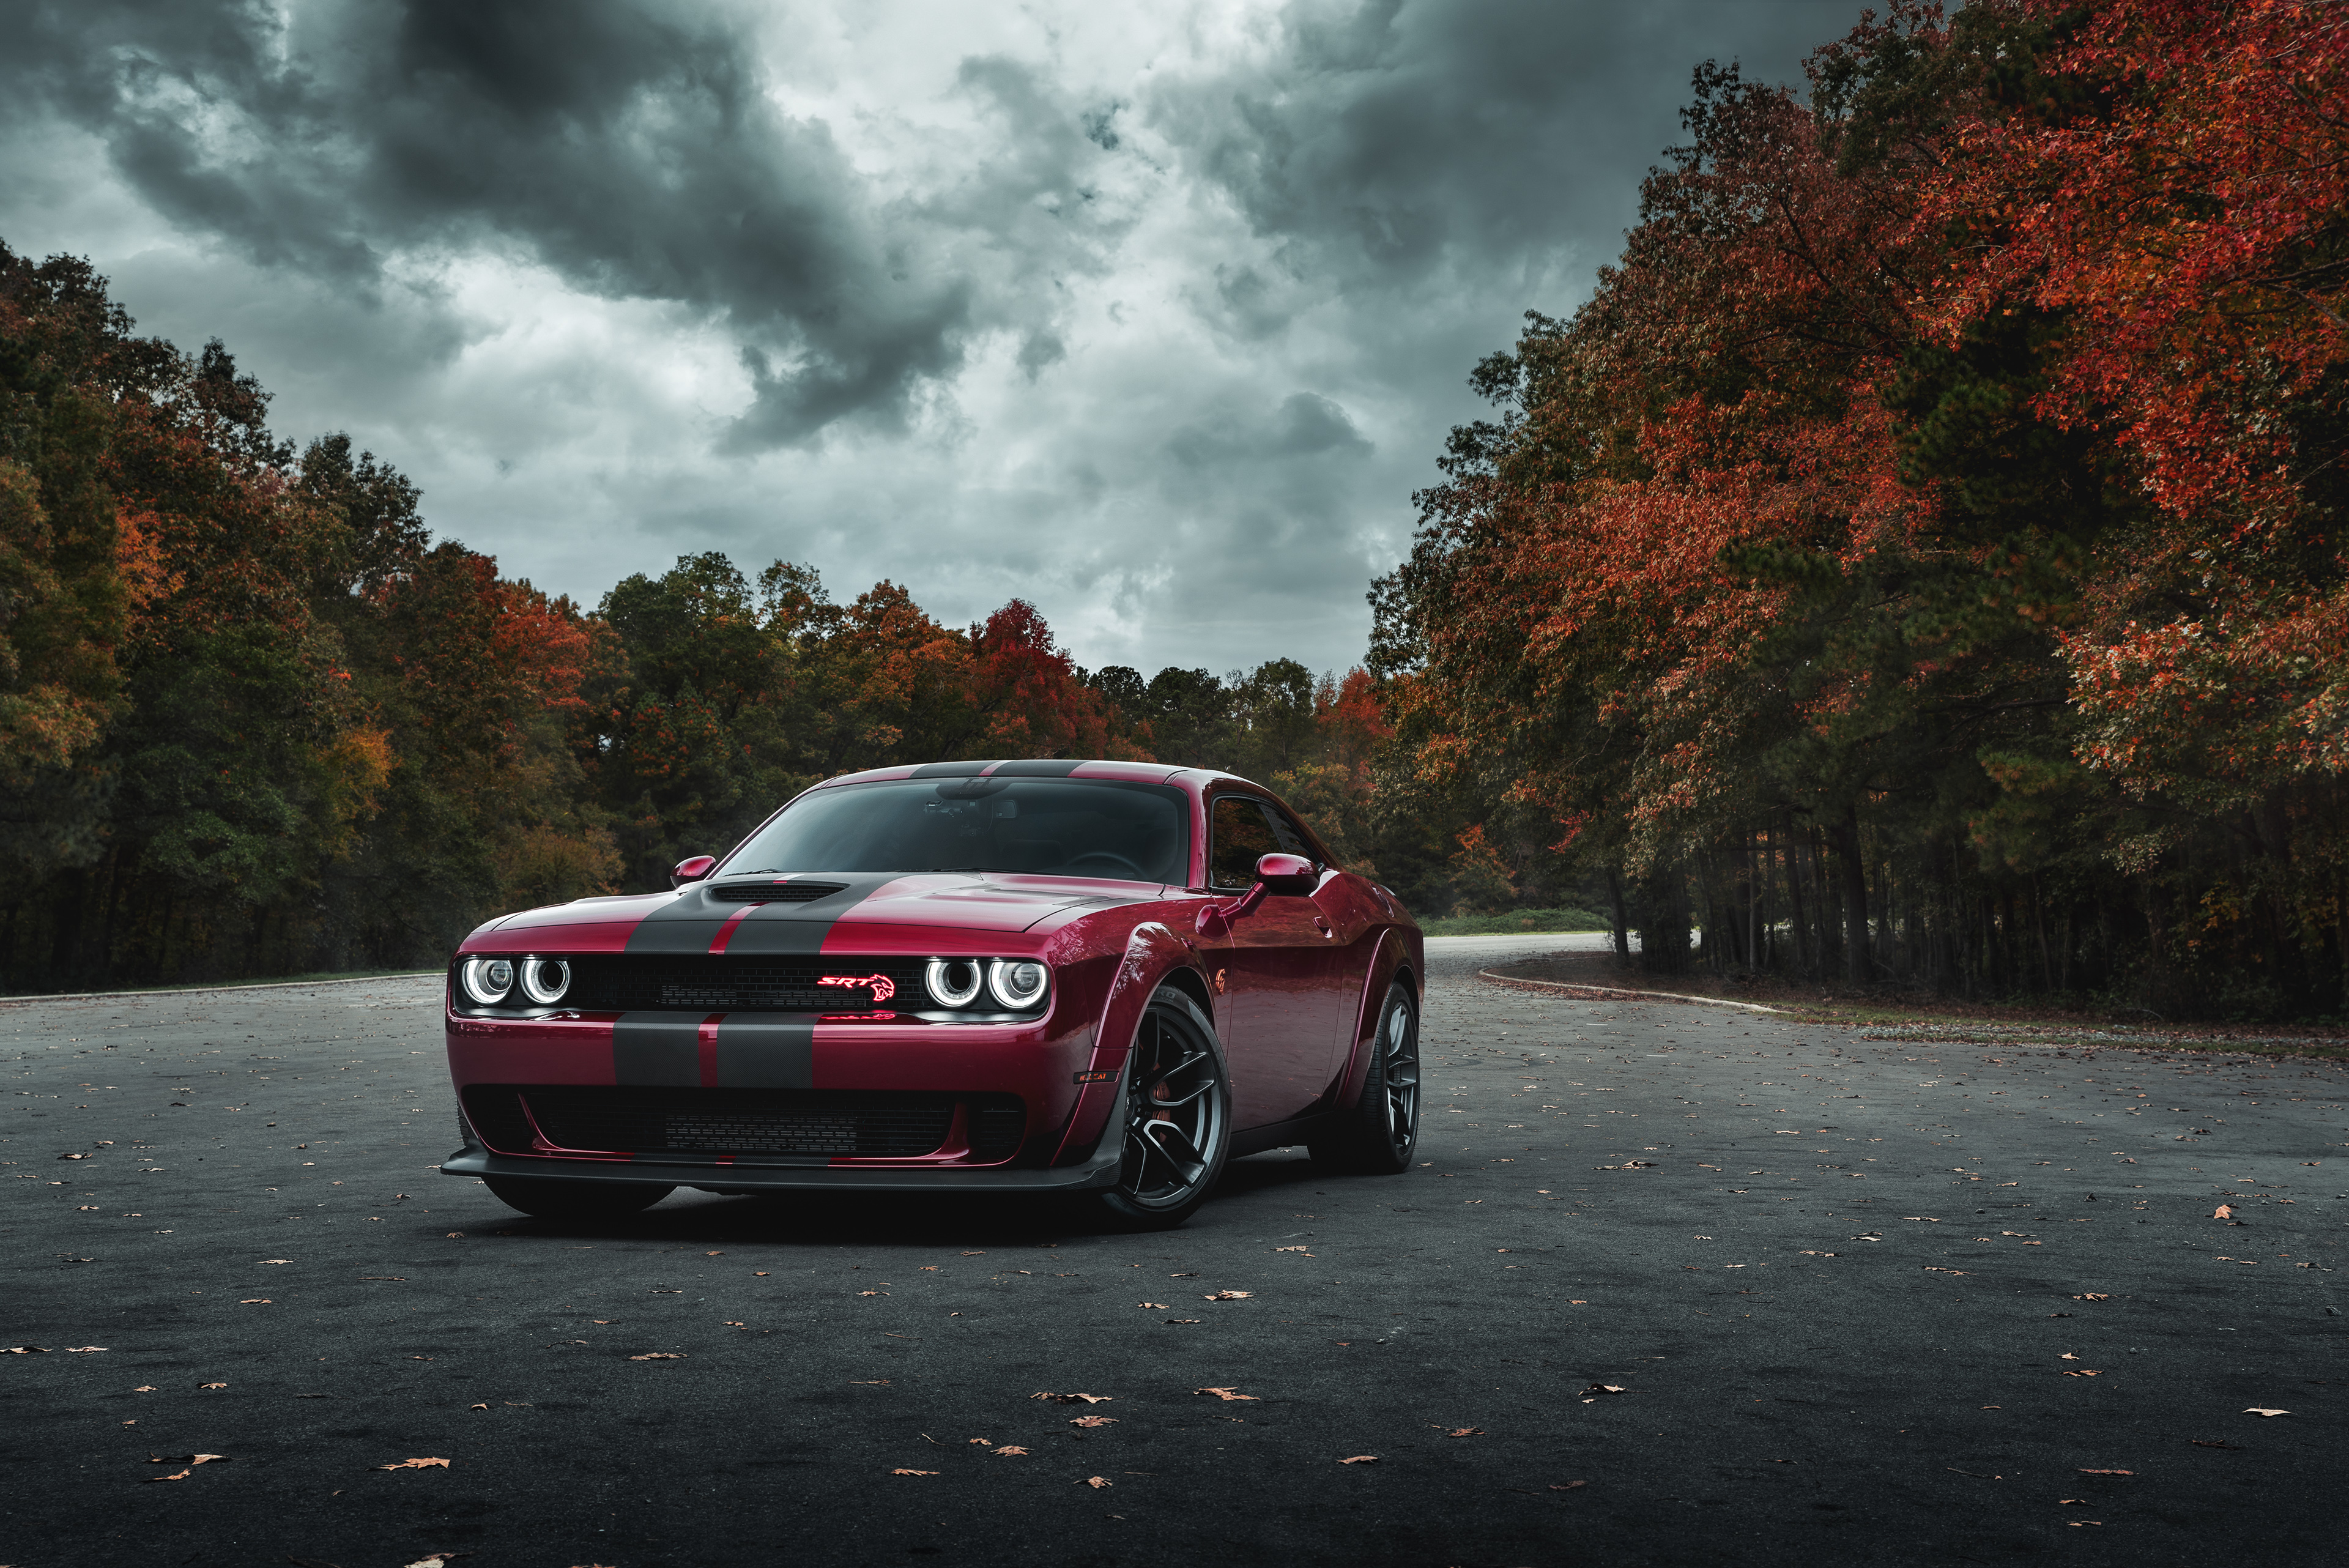 Dodge Charger Srt Hellcat Widebody 4k Ultra Hd Wallpaper Background Image 3840x2563 Id 1046304 Wallpaper Abyss